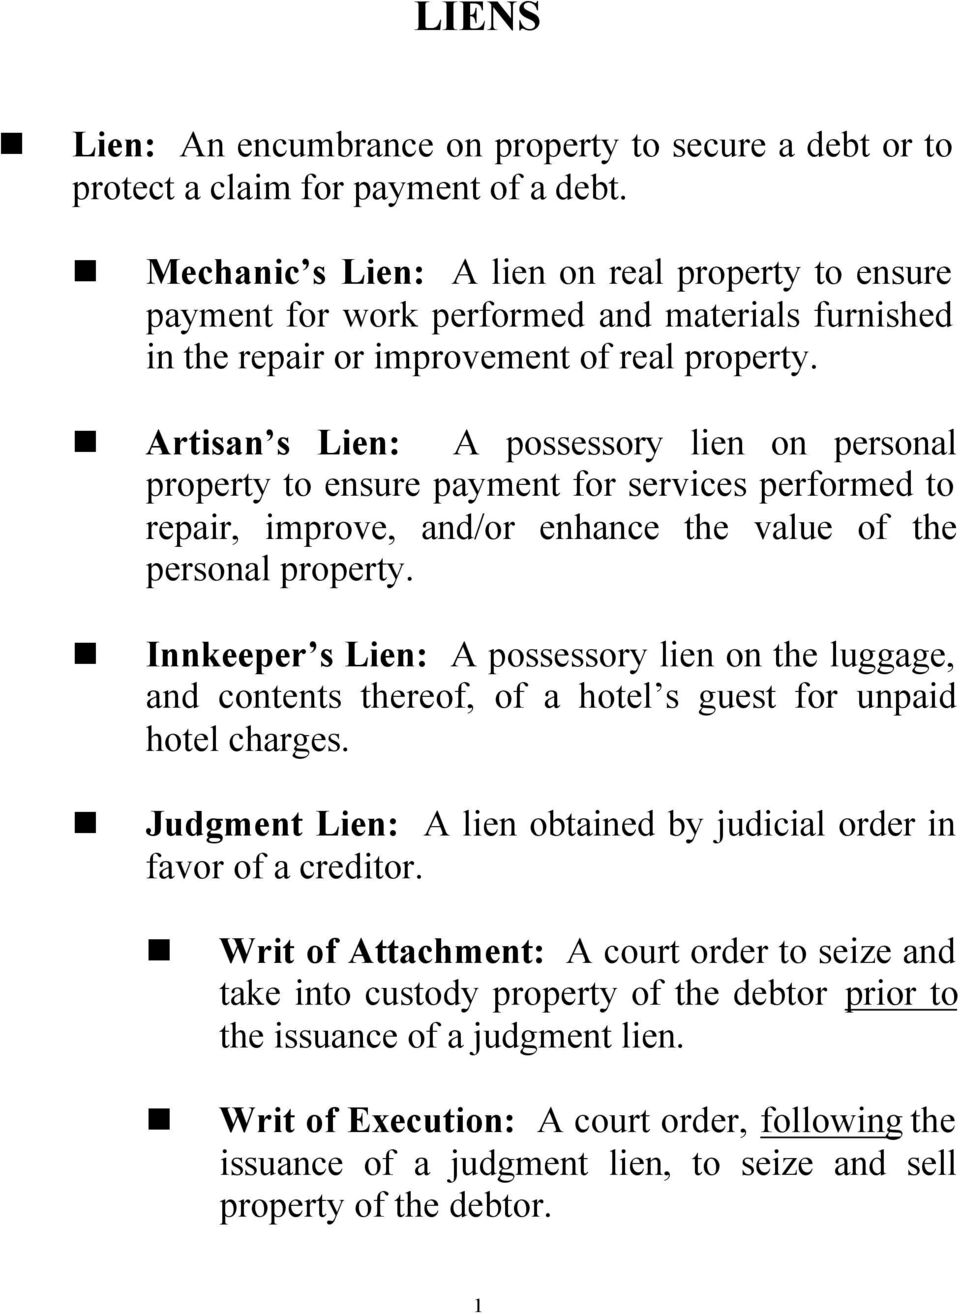 Artisan s Lien: A possessory lien on personal property to ensure payment for services performed to repair, improve, and/or enhance the value of the personal property.